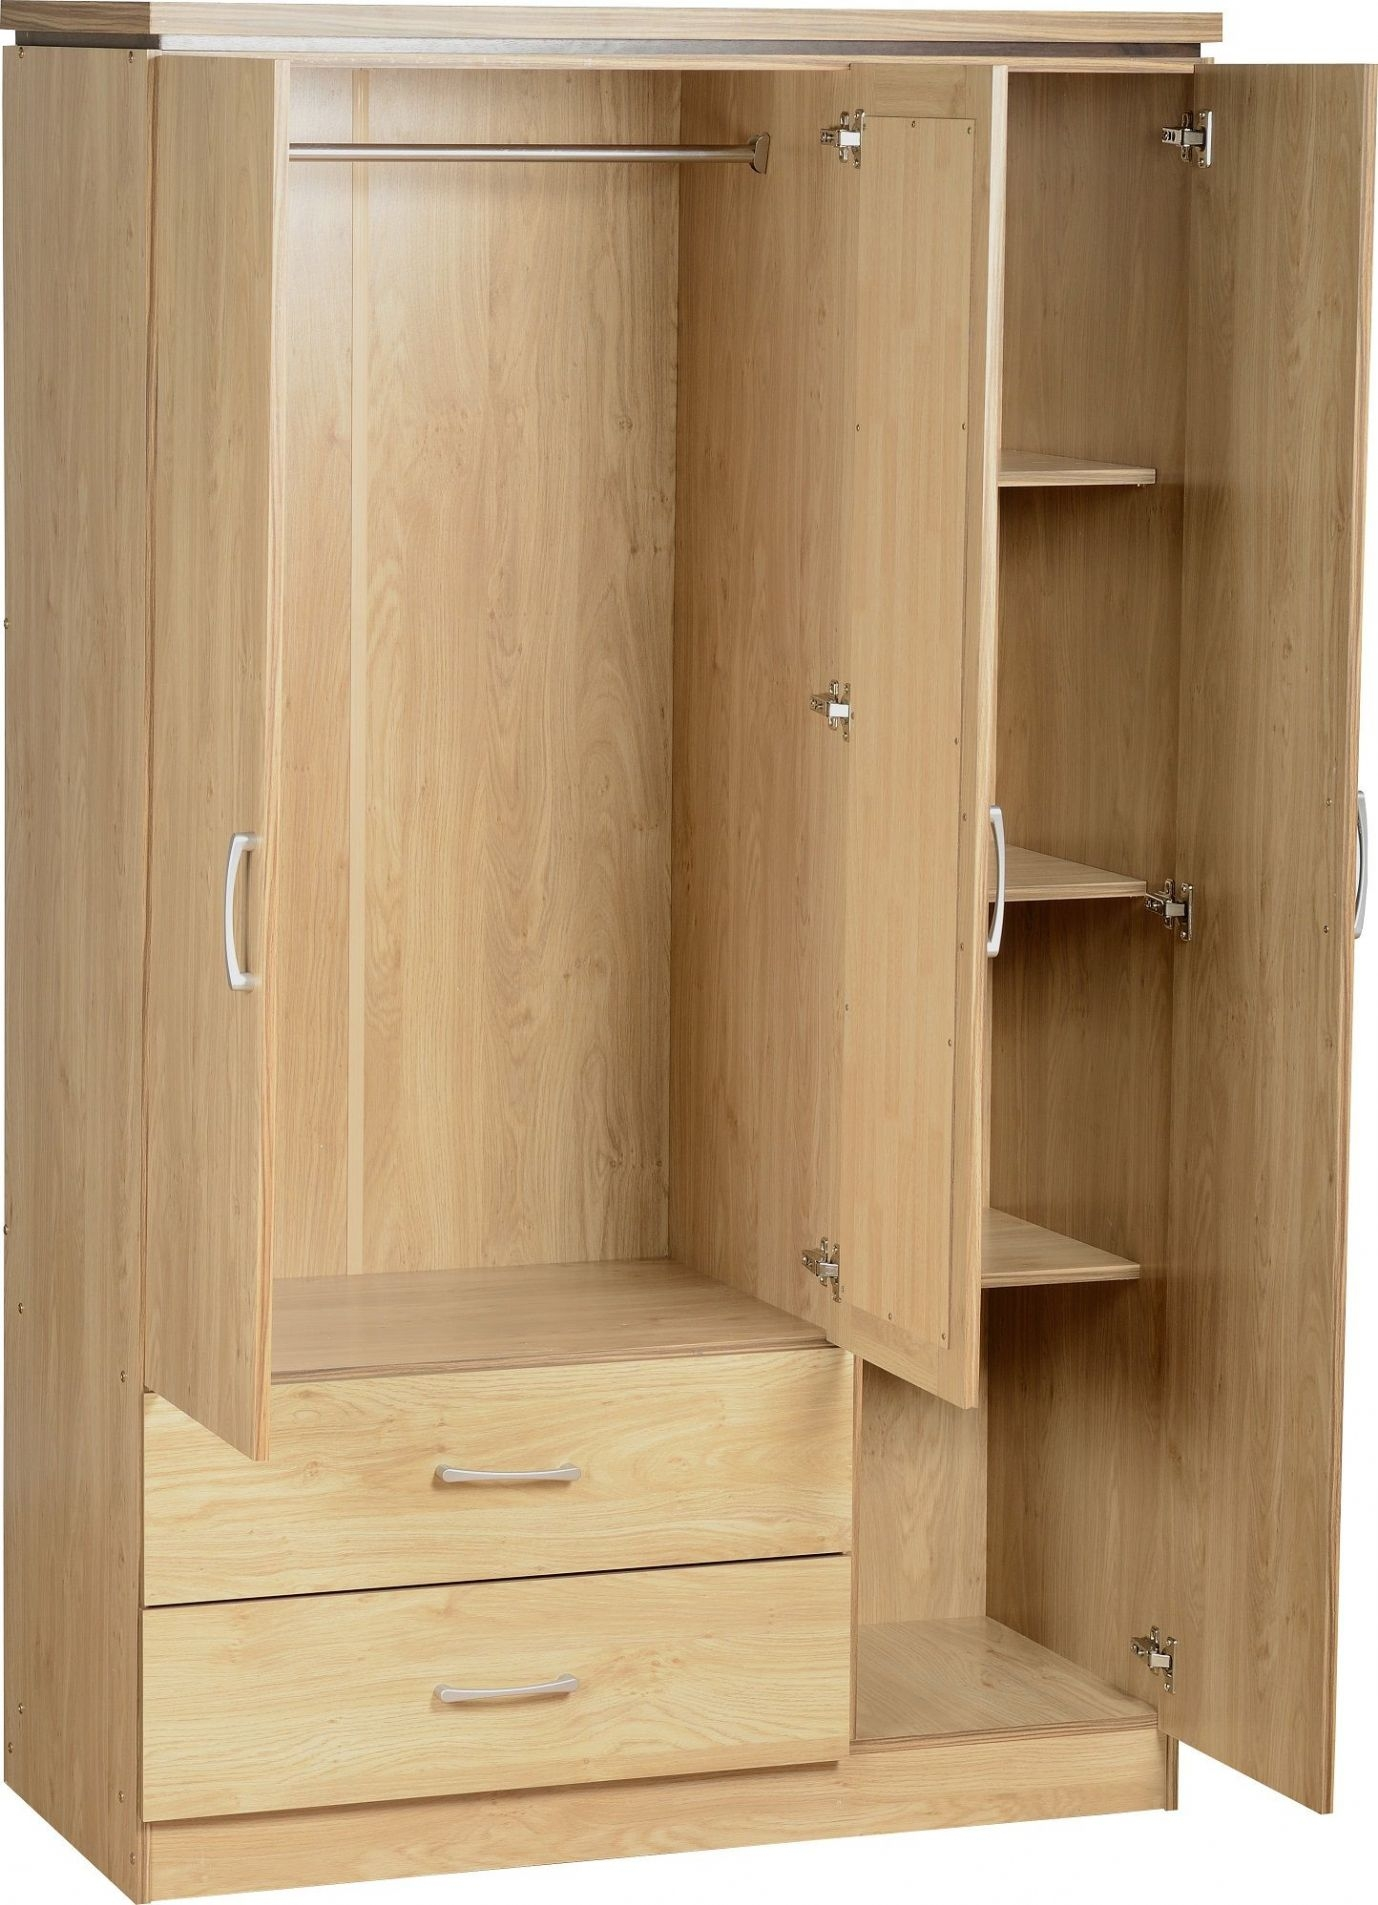 Featured Image of Wardrobes With Shelves